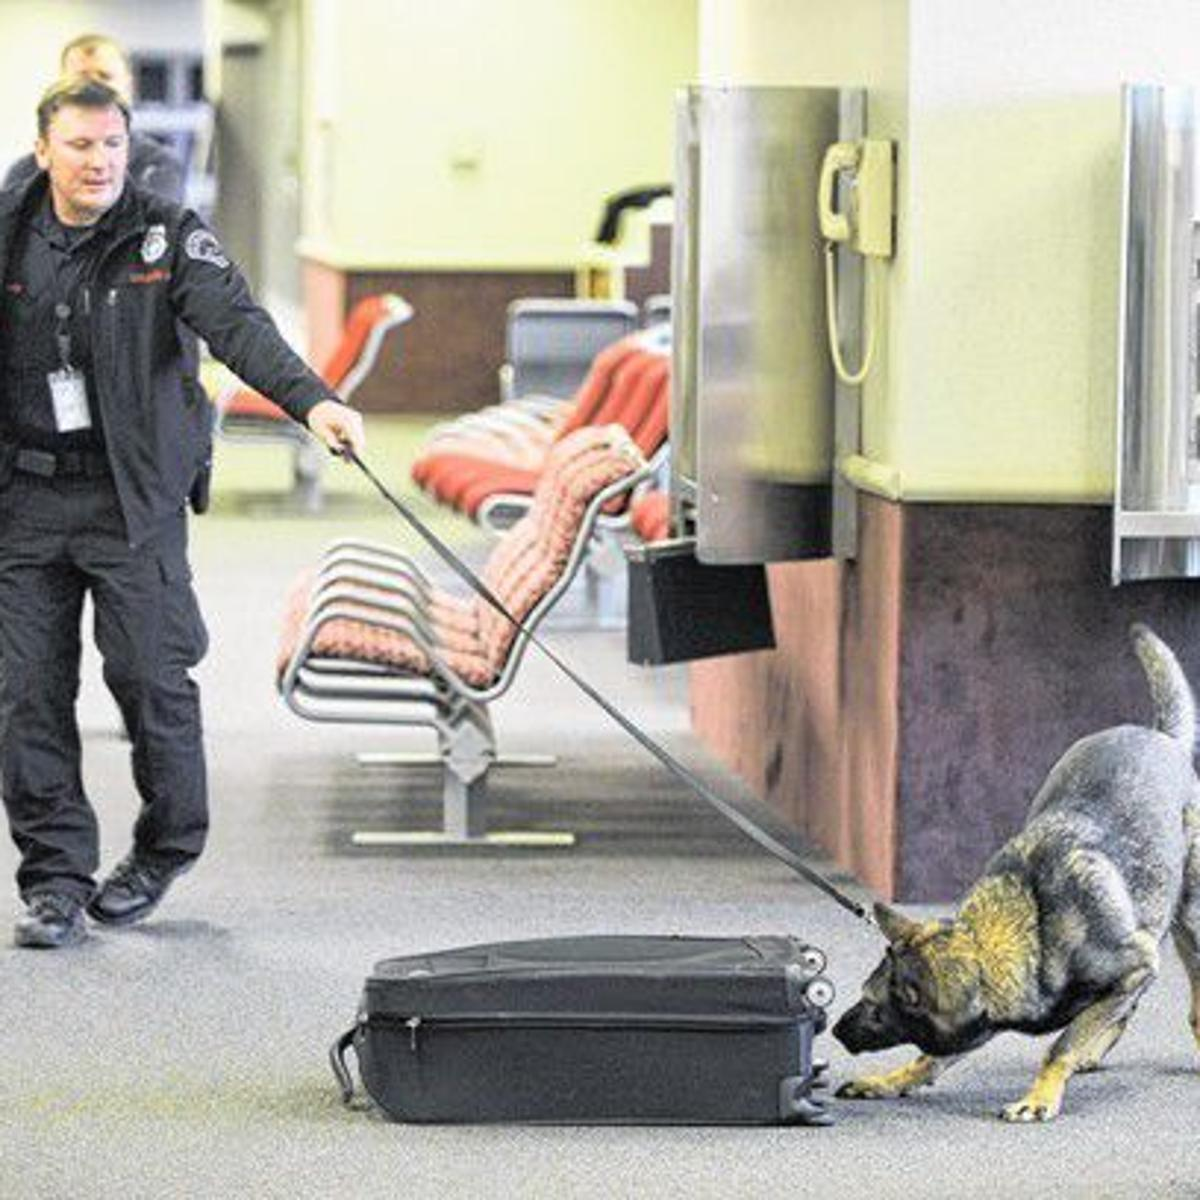 Colorado Springs Airport dogs have a nose for trouble